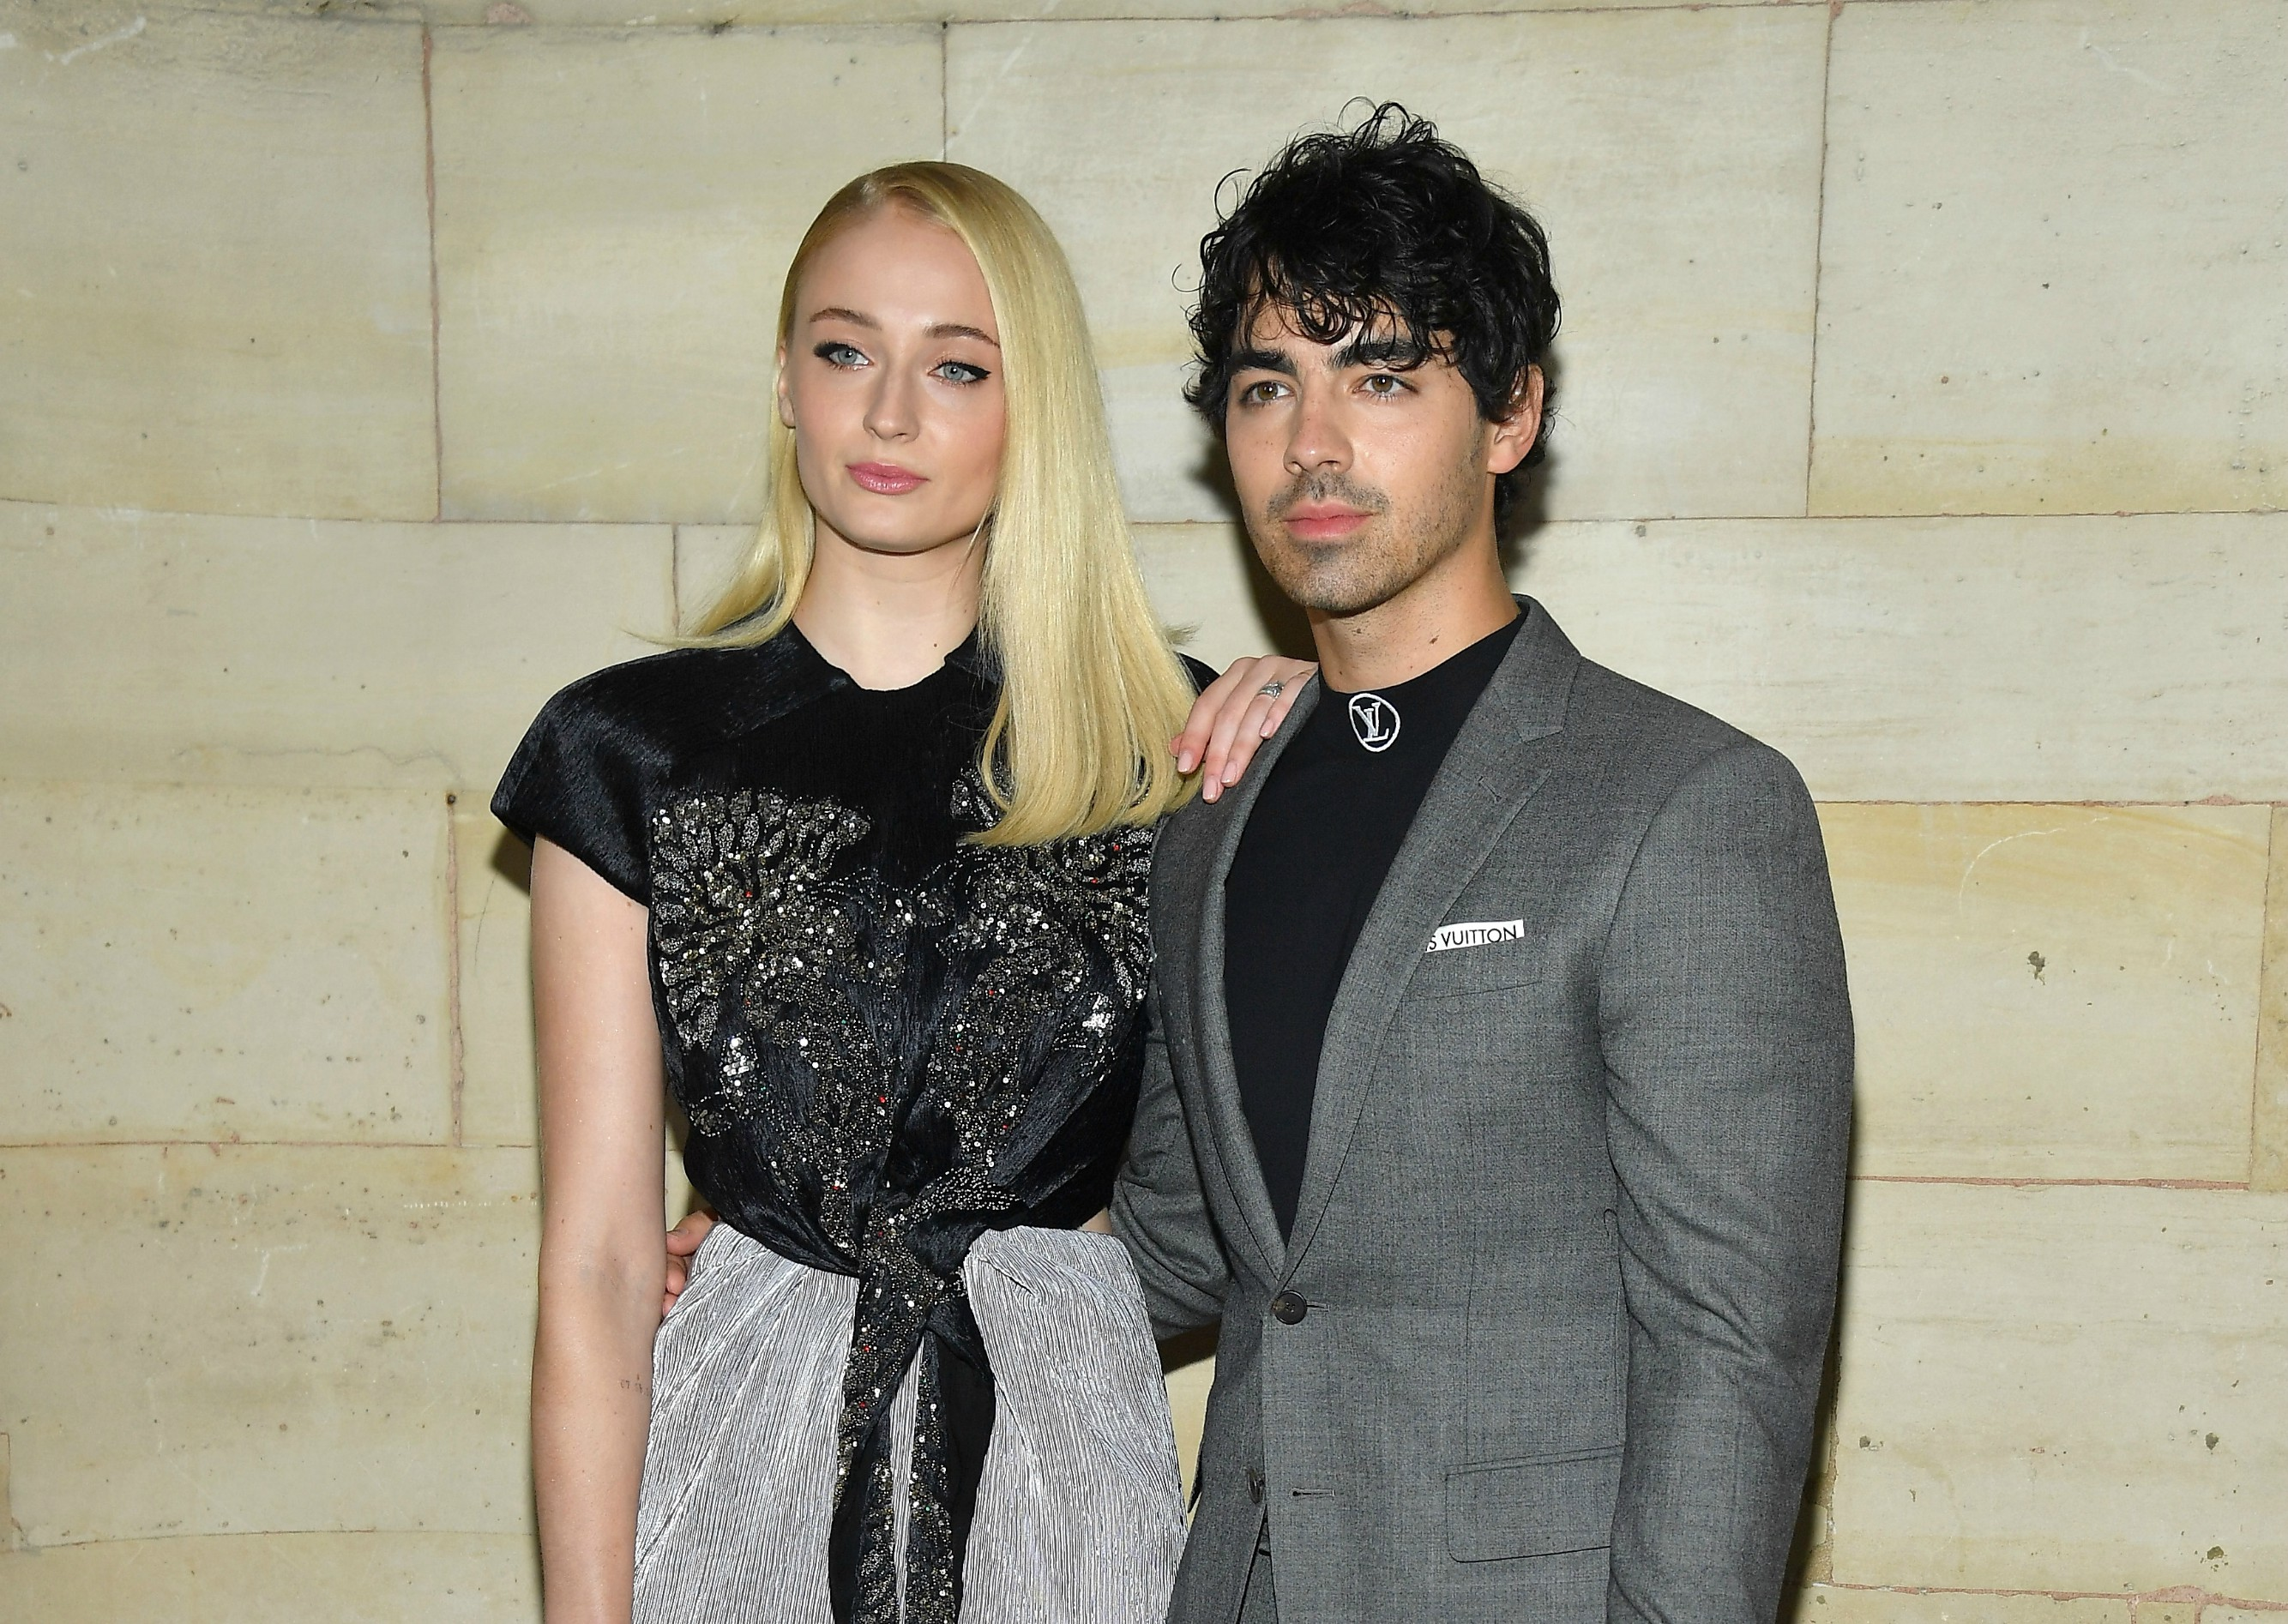 Louis Vuitton : Front Row - Paris Fashion Week Womenswear Spring/Summer 2019. Sophie Turner and Joe Jonas.